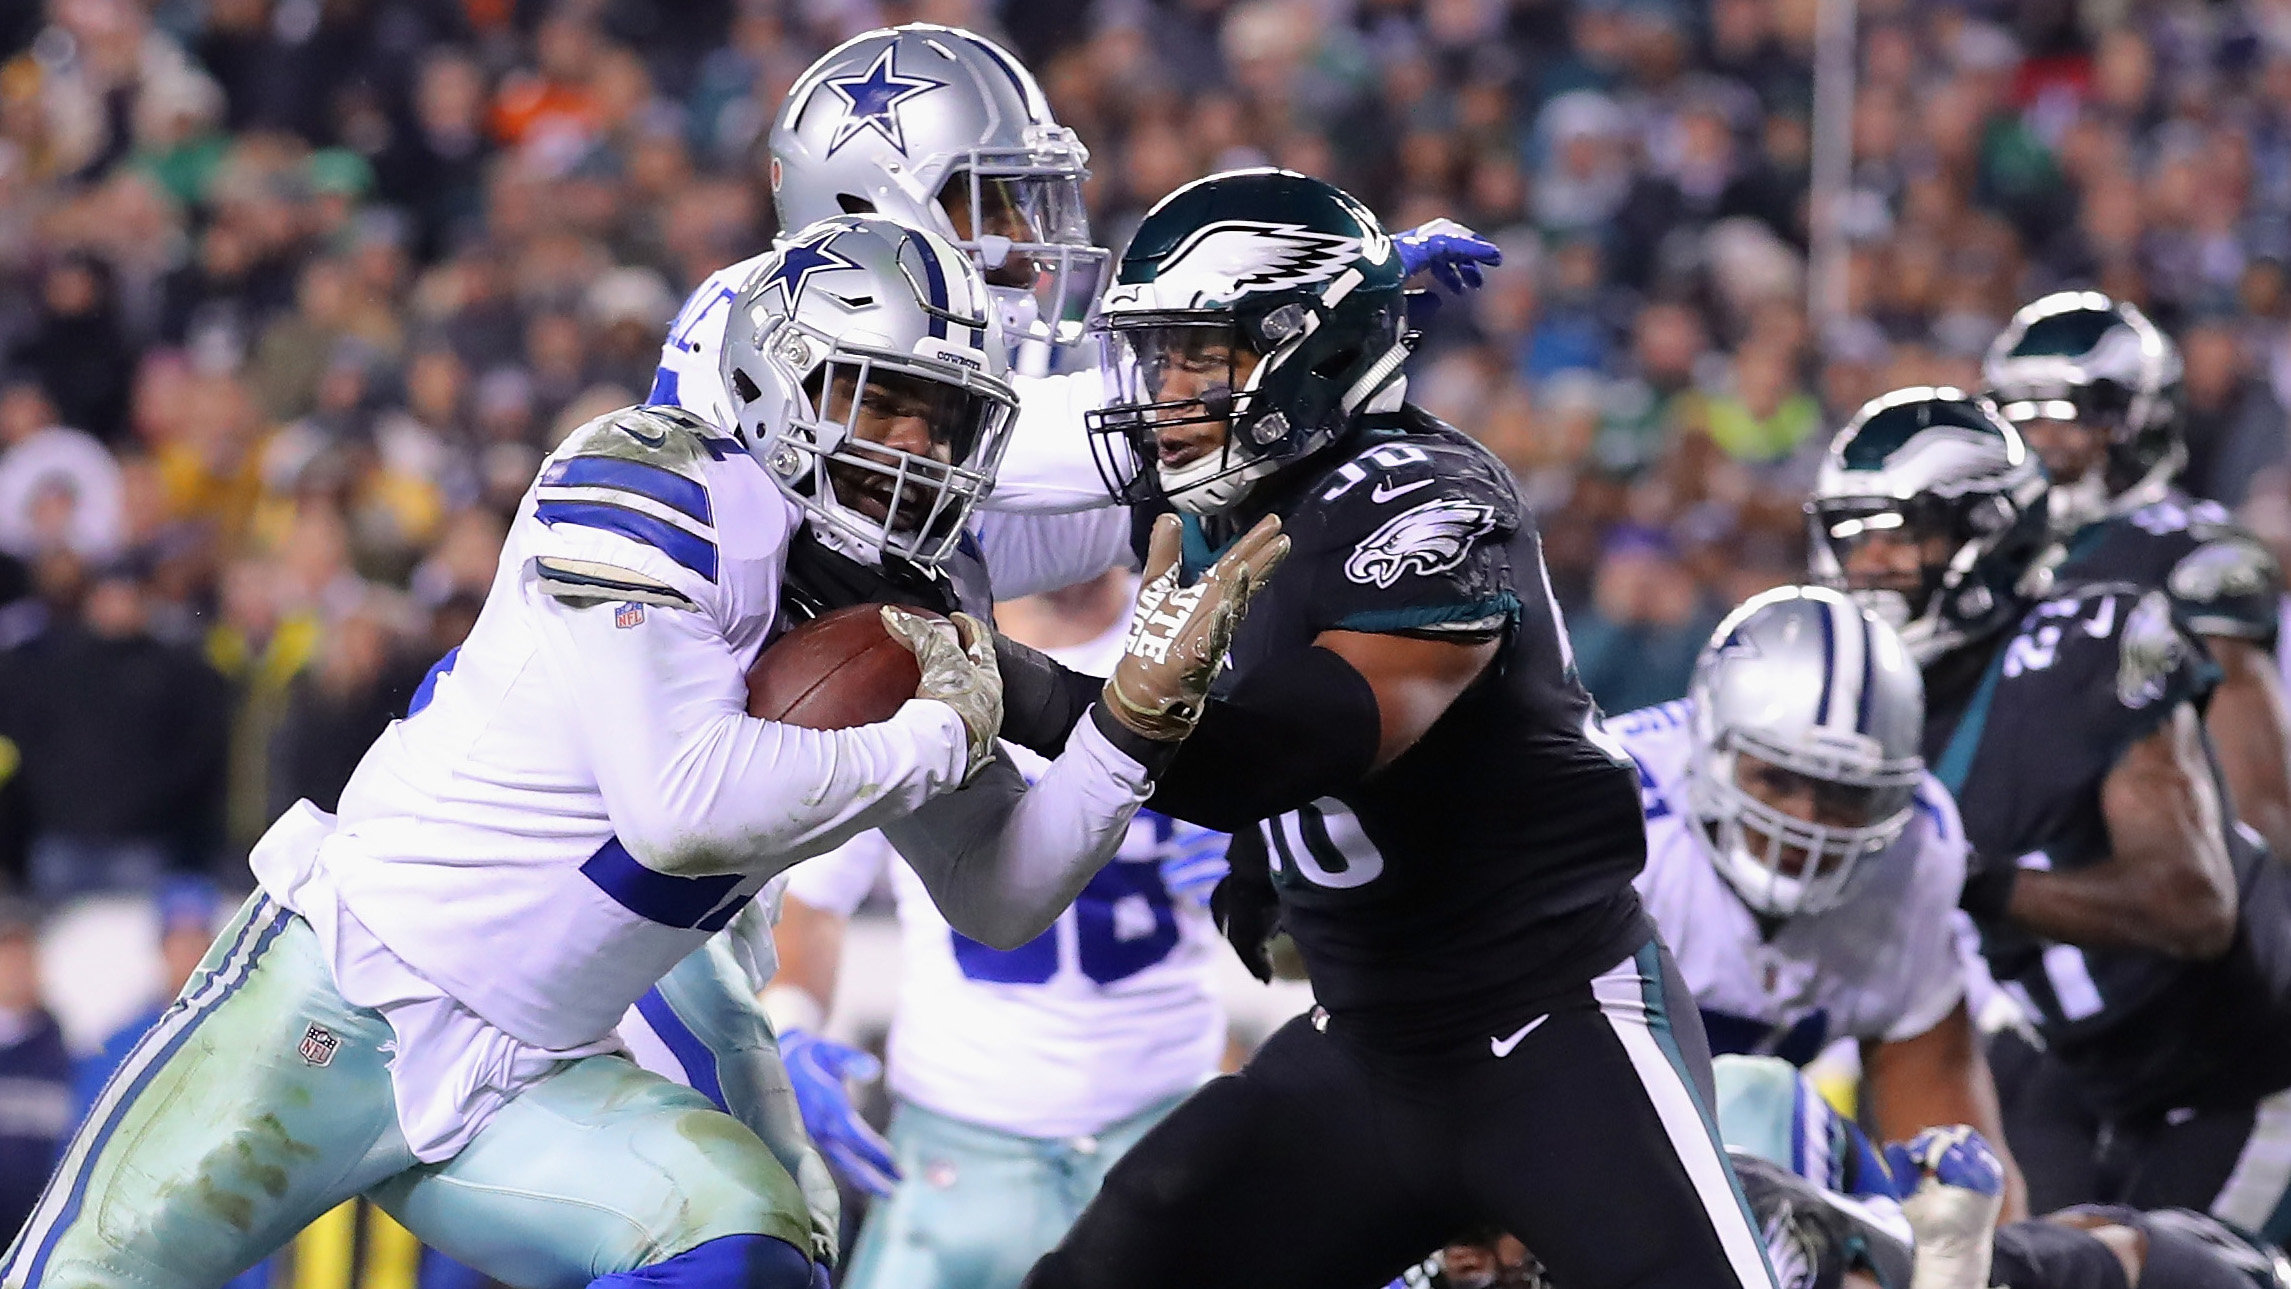 7baefdd95 Highlights: Dallas Cowboys 27, Philadelphia Eagles 20 | NBC Sports